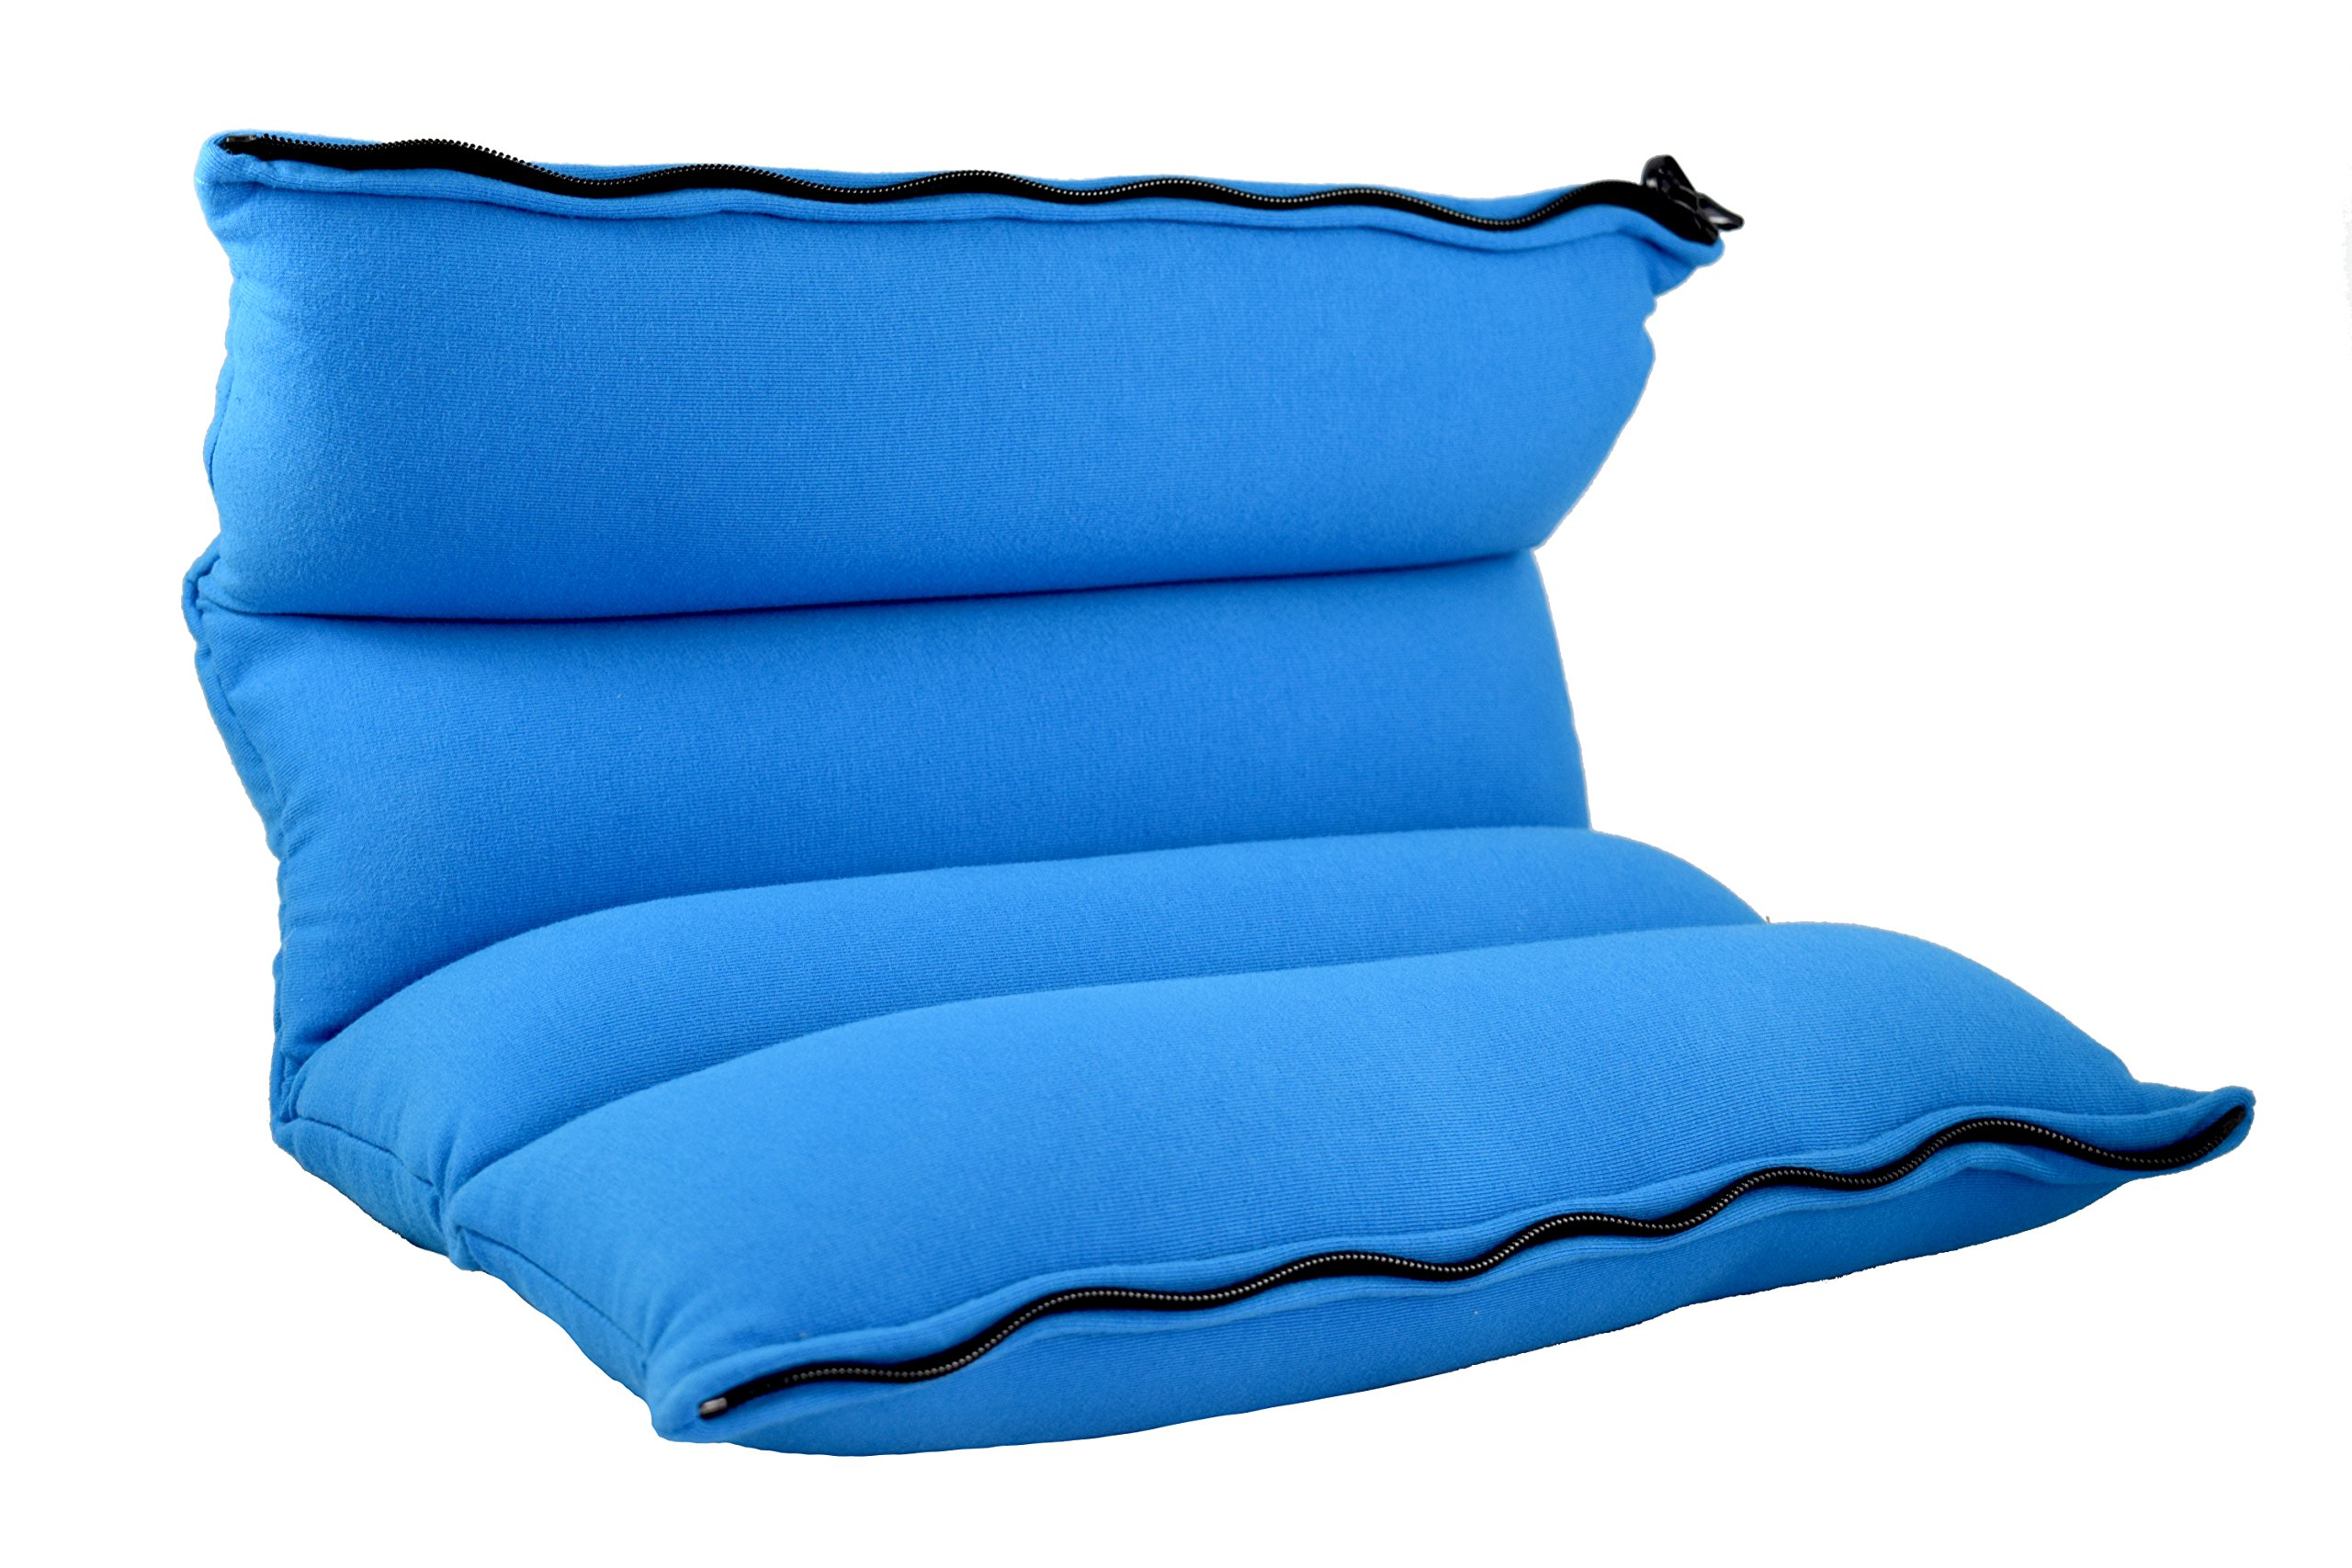 Yogibo ZippaRoll Multiple Purpose Roll up Pillow- Use as a Pillow, Seat Cushion or as Lumbar Back Support - Perfect for Neck, Back or Knees (Turquoise)